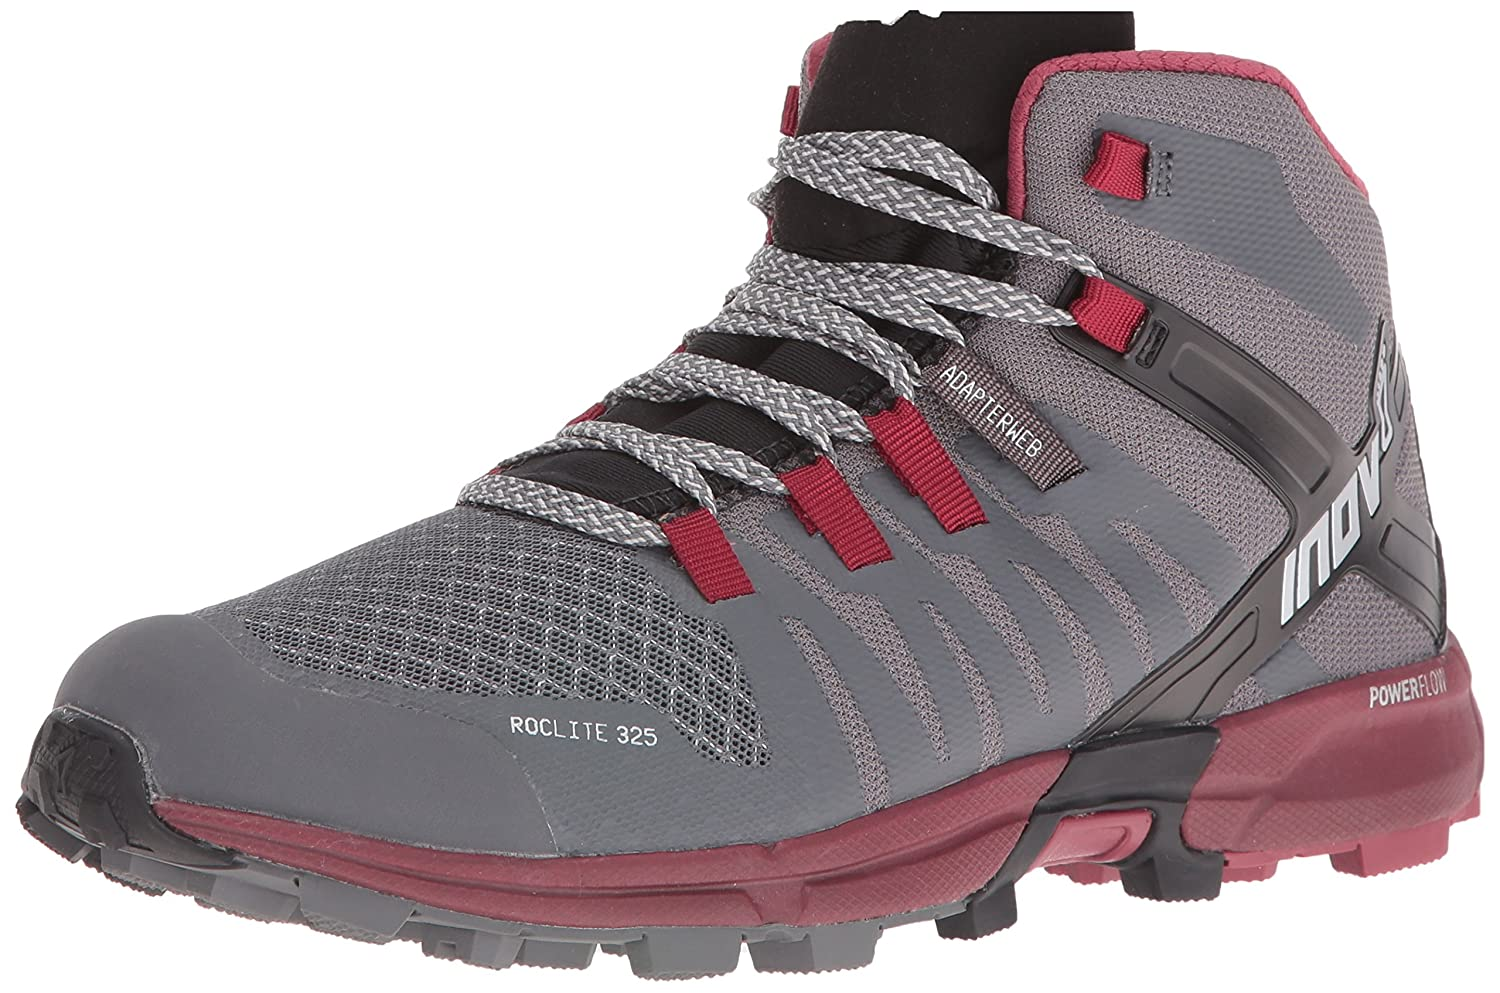 Inov-8 Women's Roclite 325 Trail Runner B01G50OG08 8 D US|Dark Grey/Dark Red